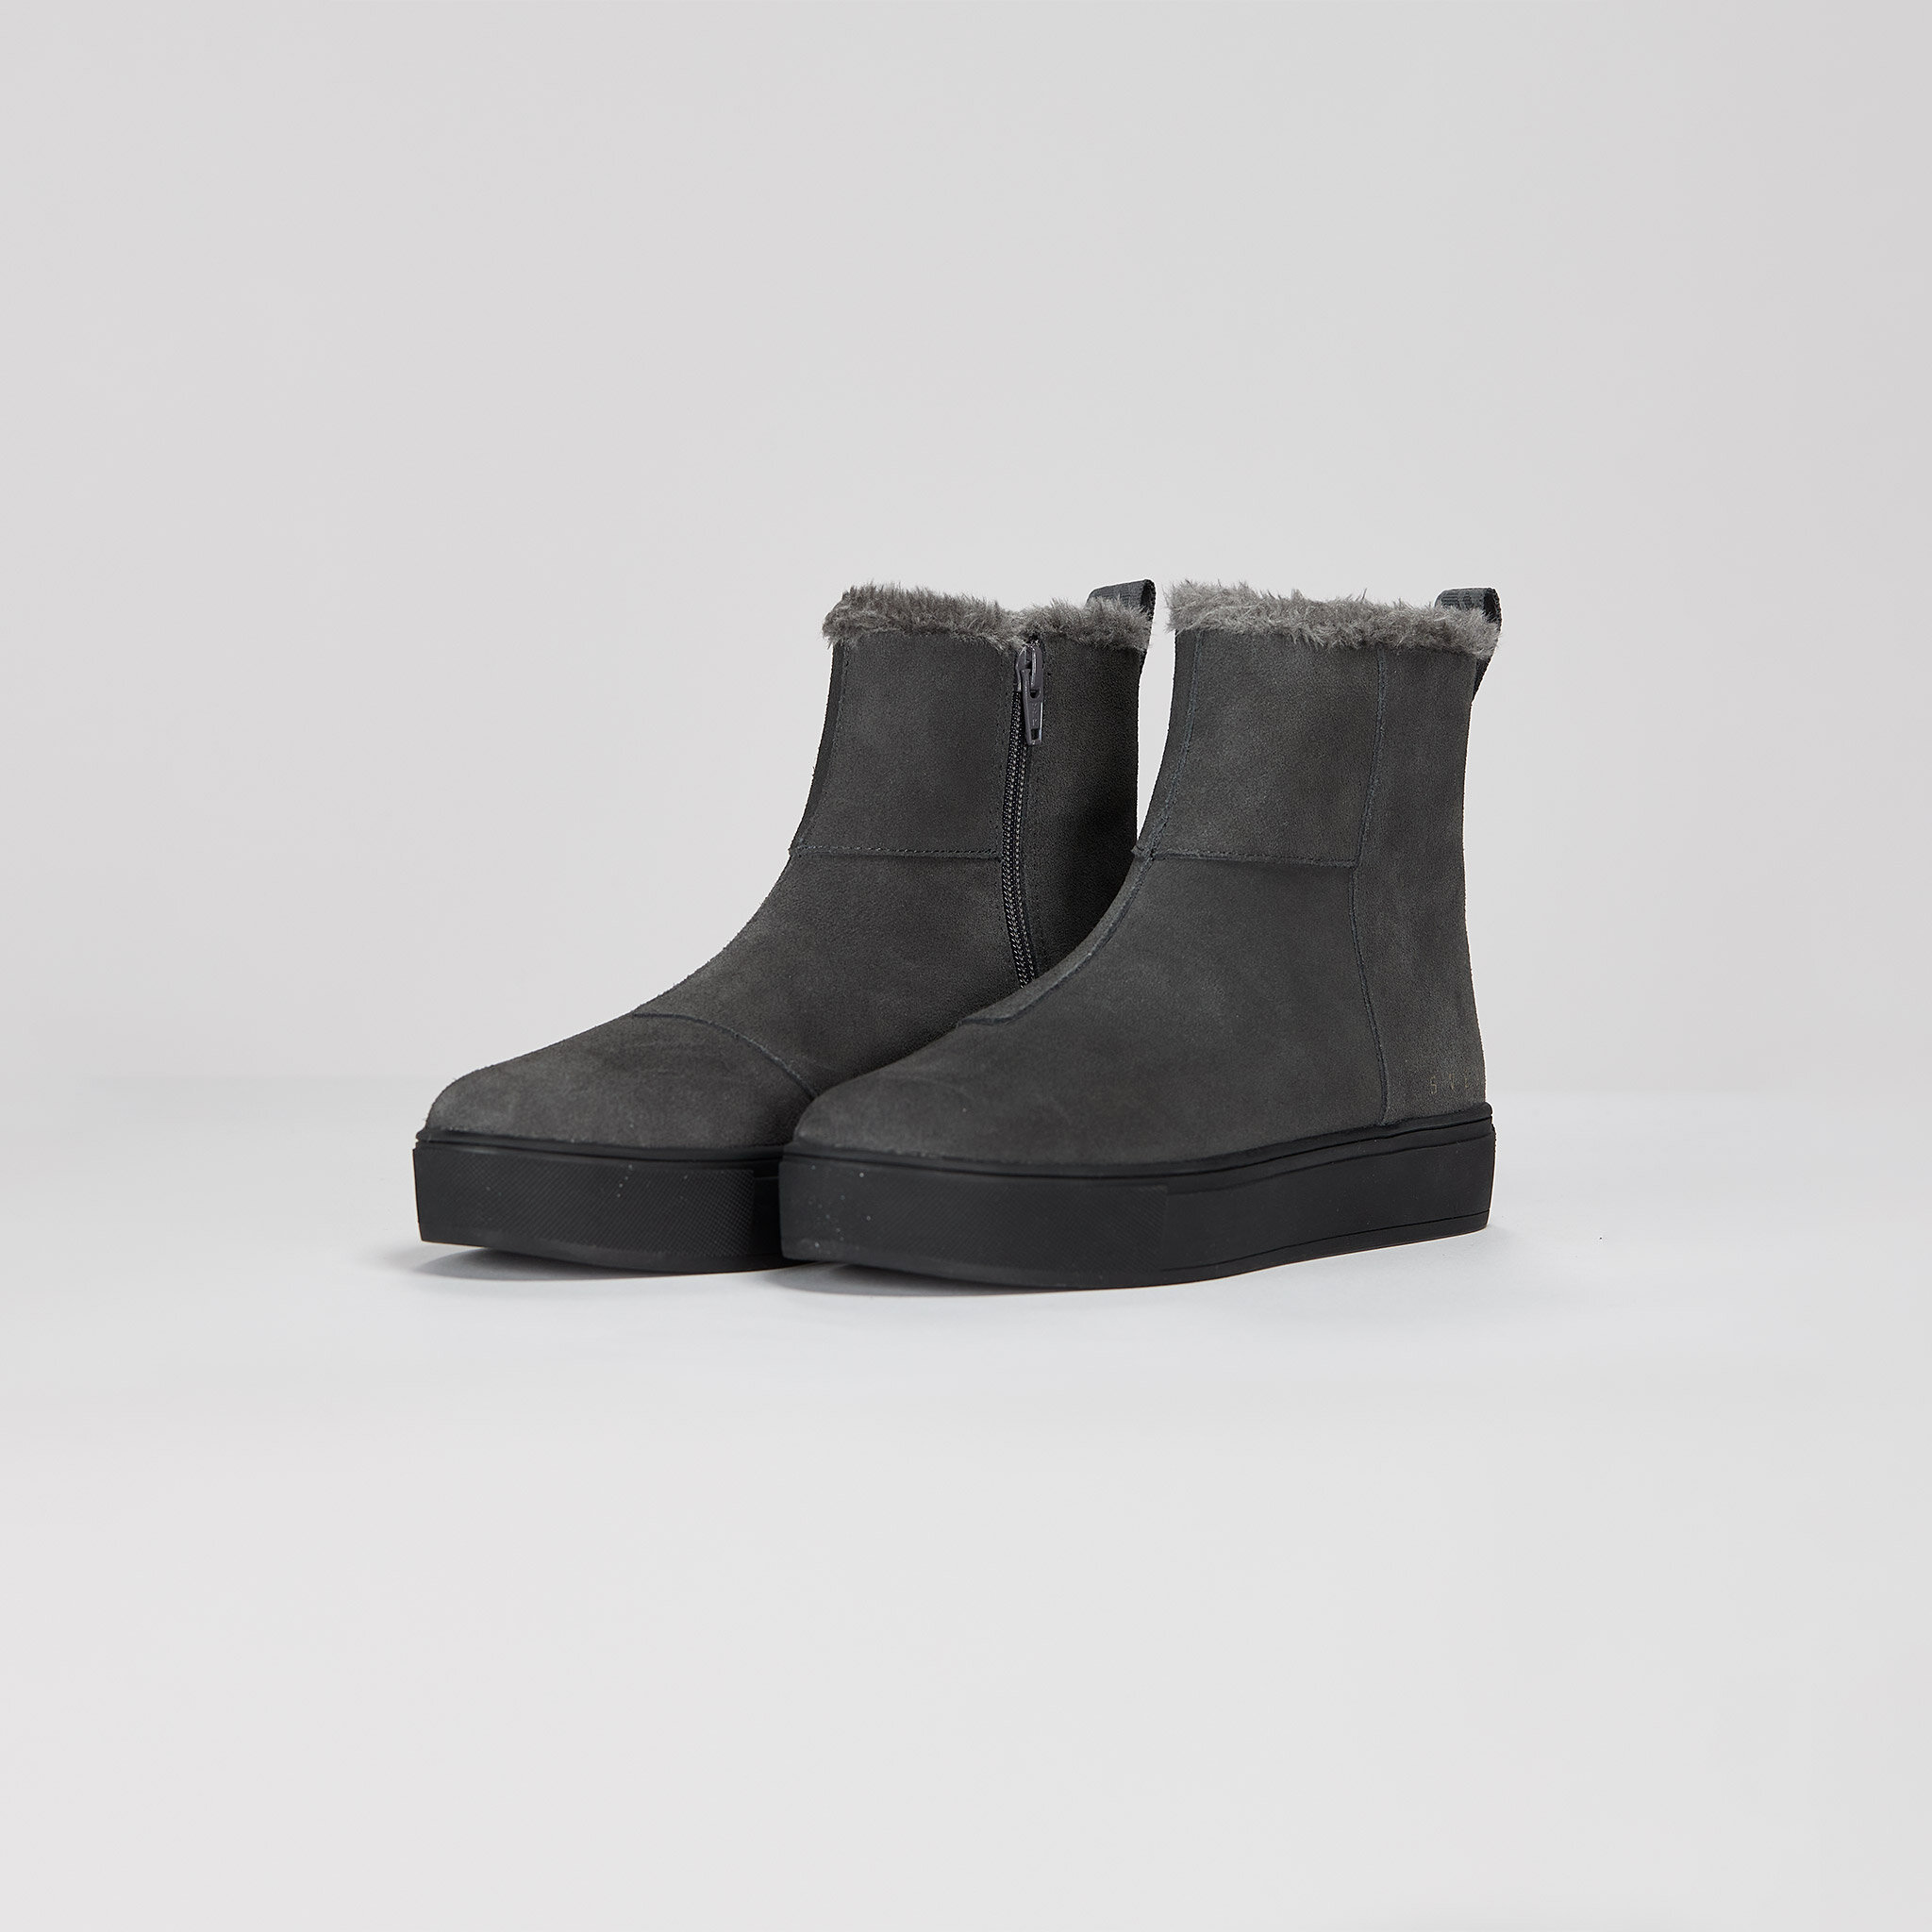 Suede / Pile Boots